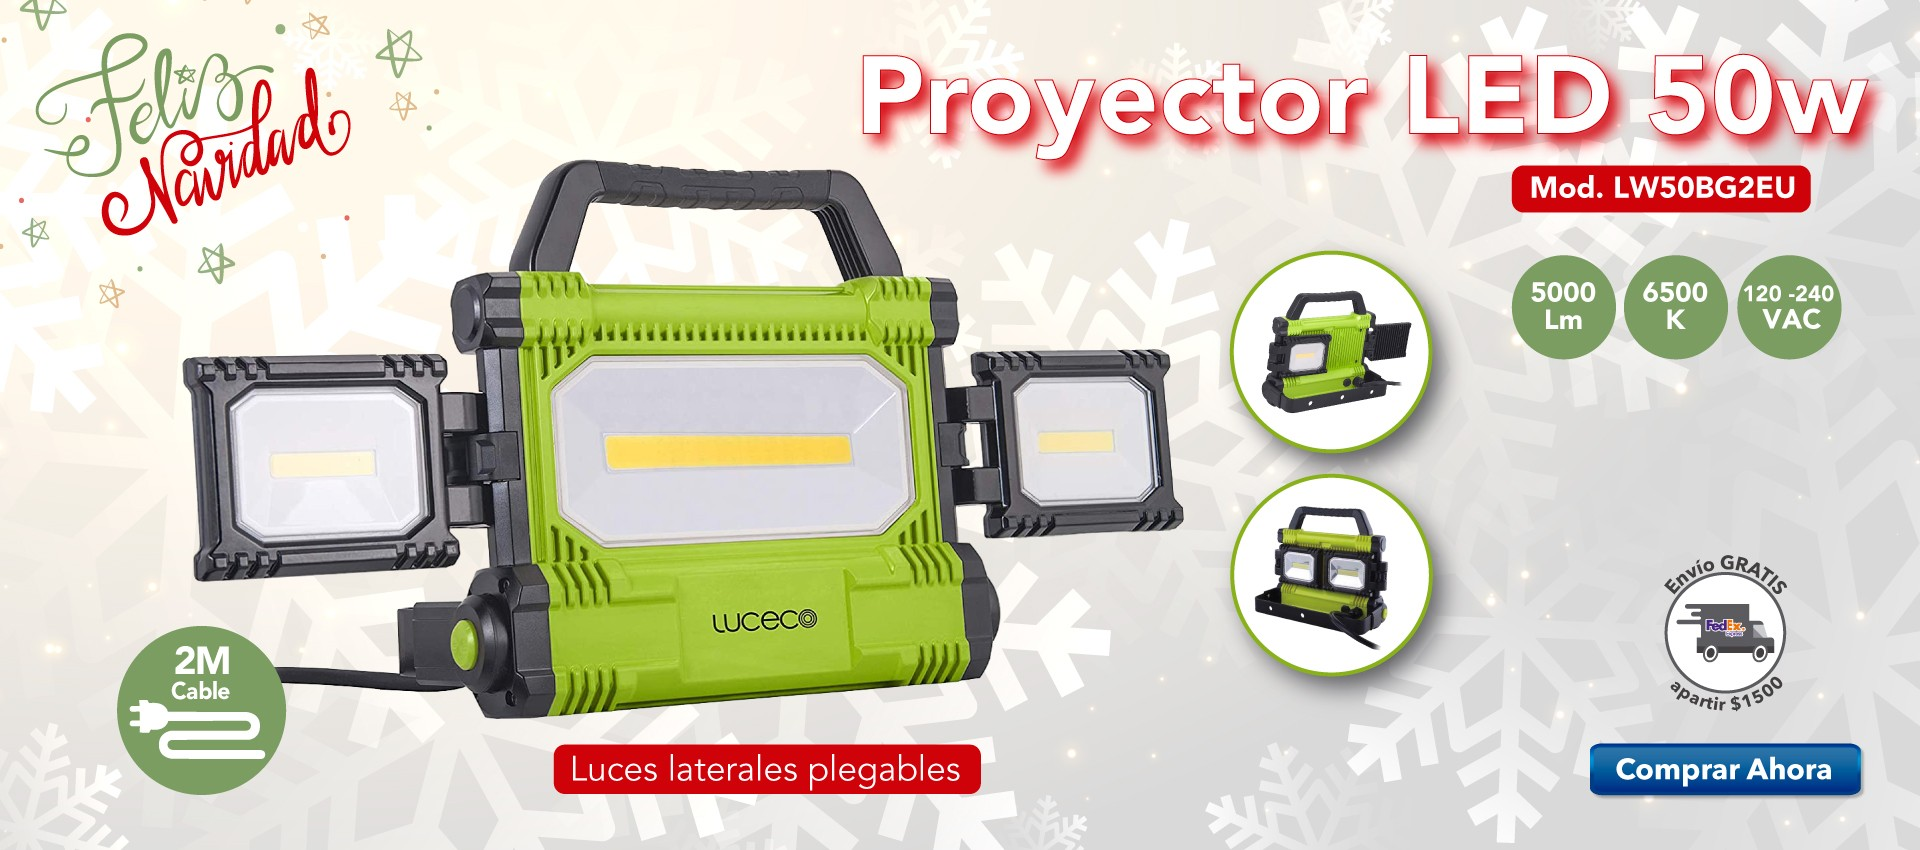 Proyector LED Worklight 50w